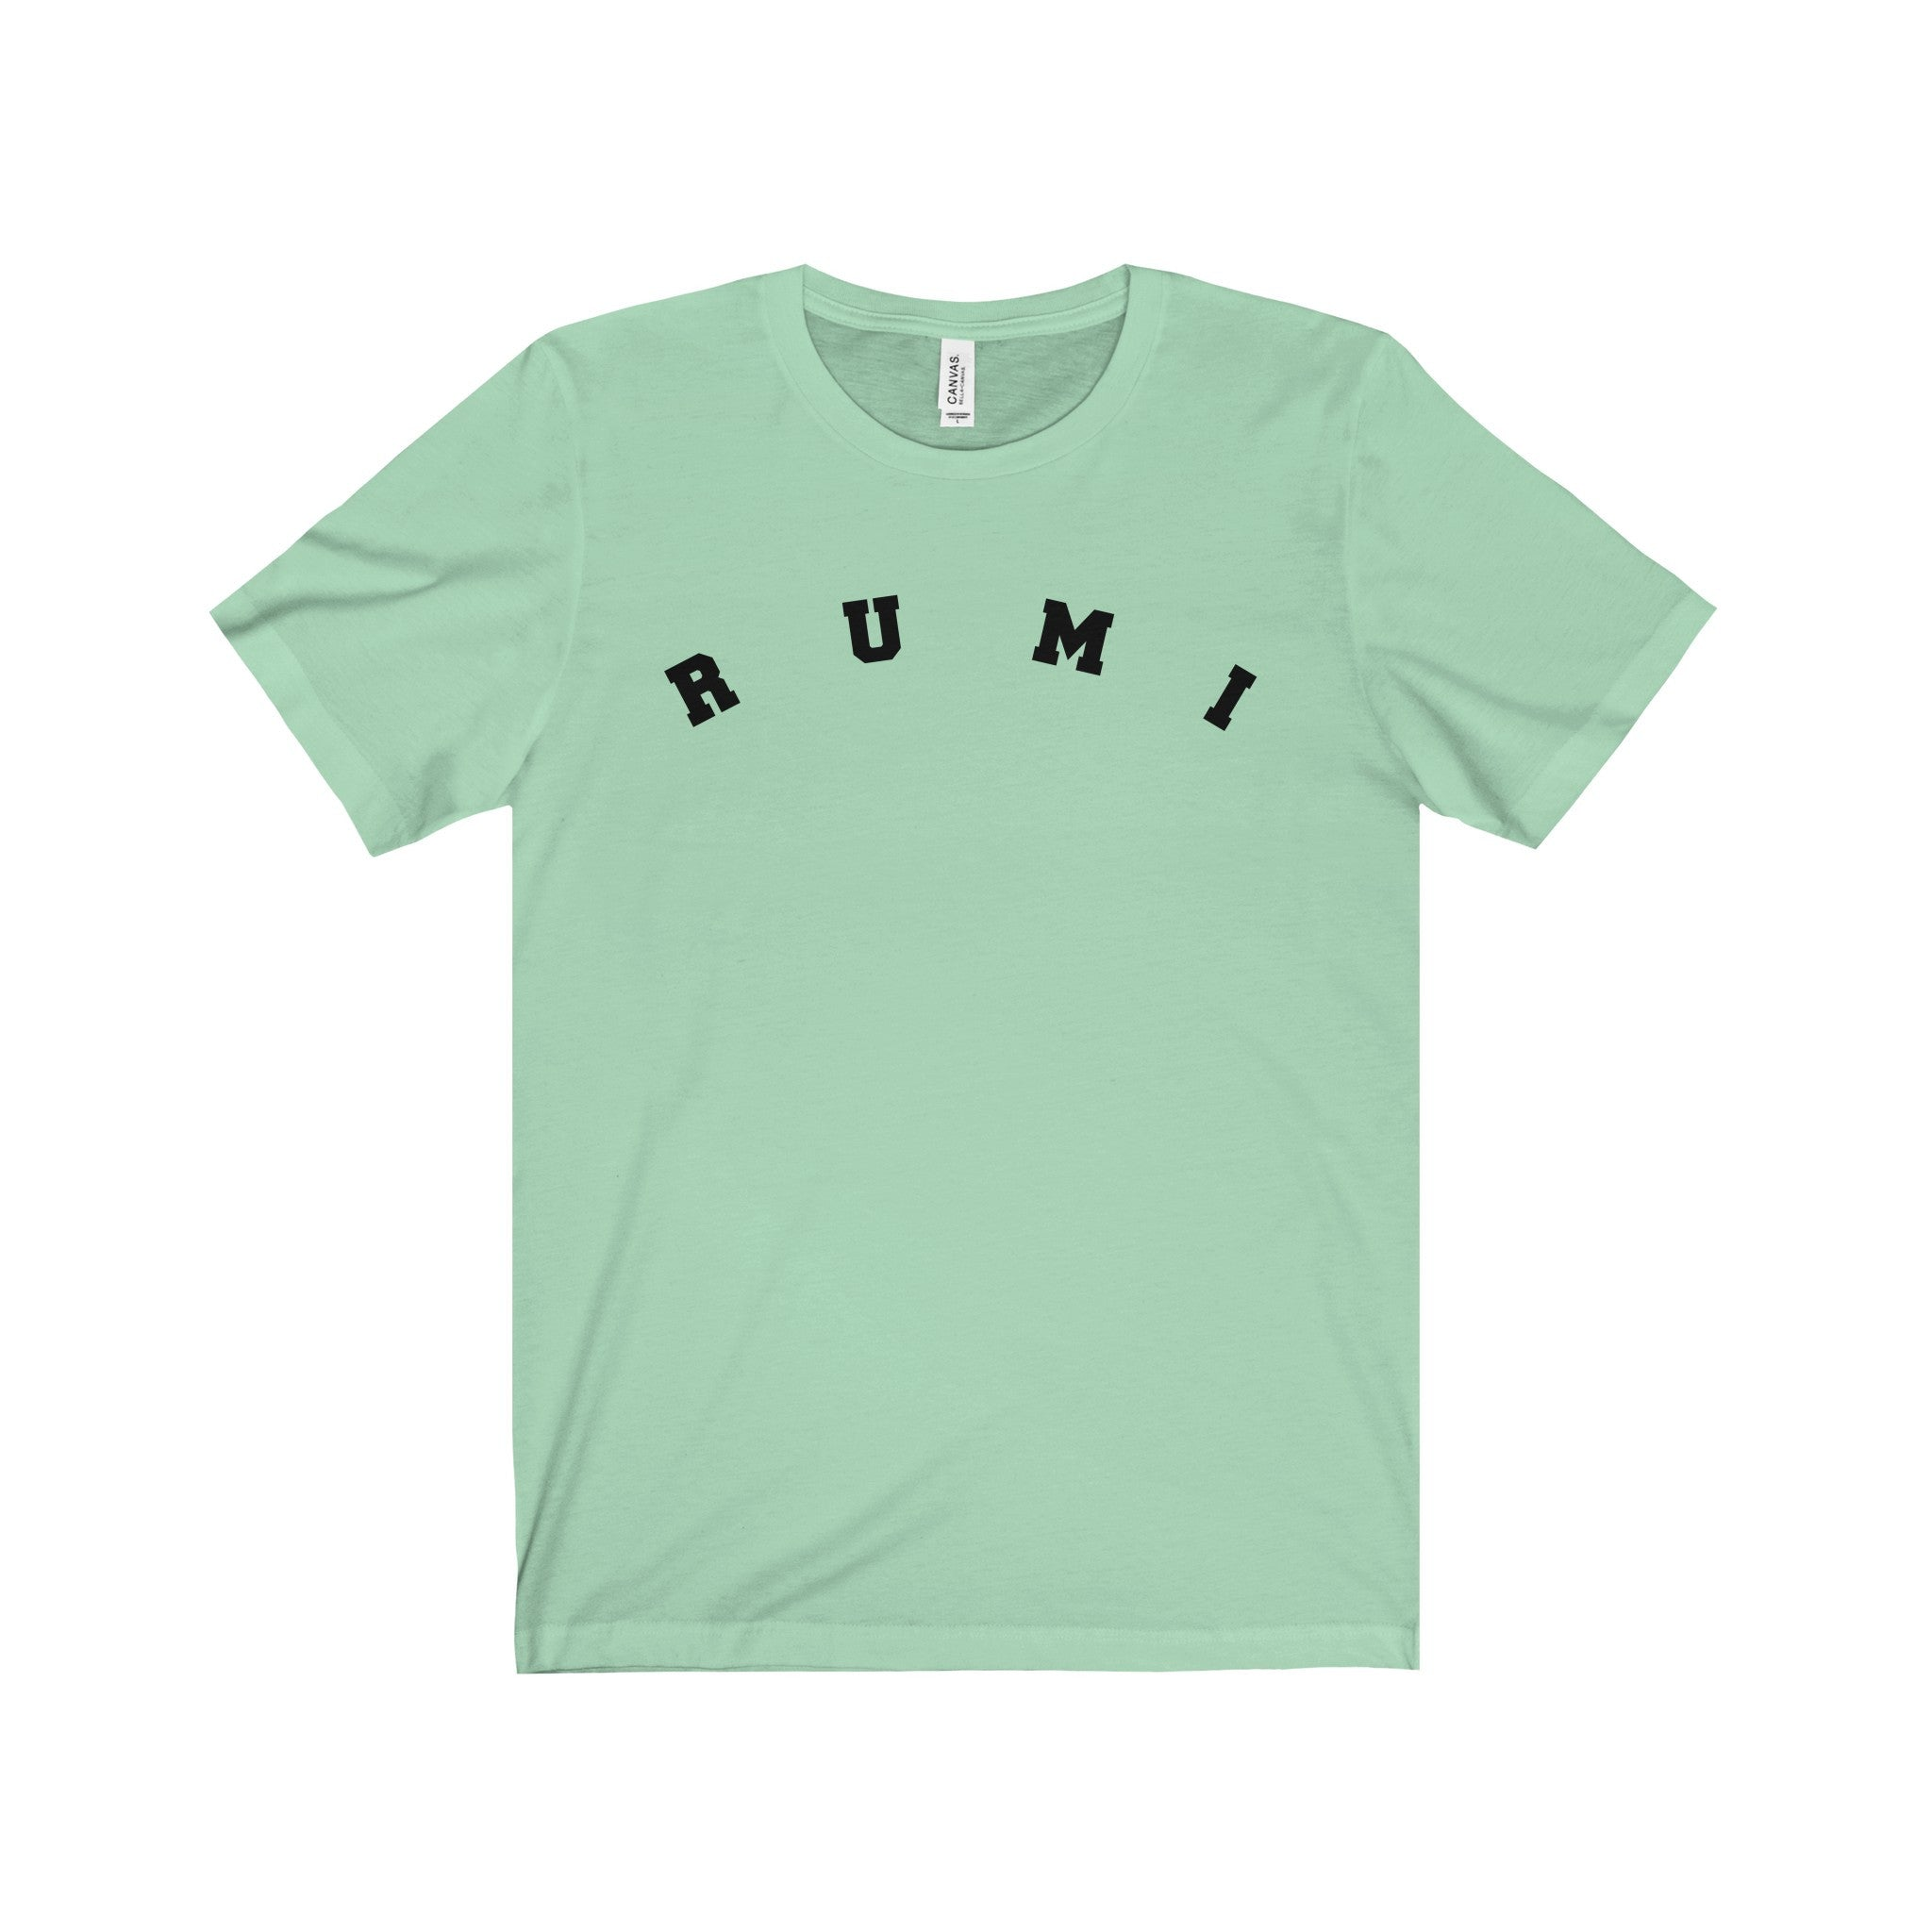 RUMI Black Letter Tee (6 colors available)